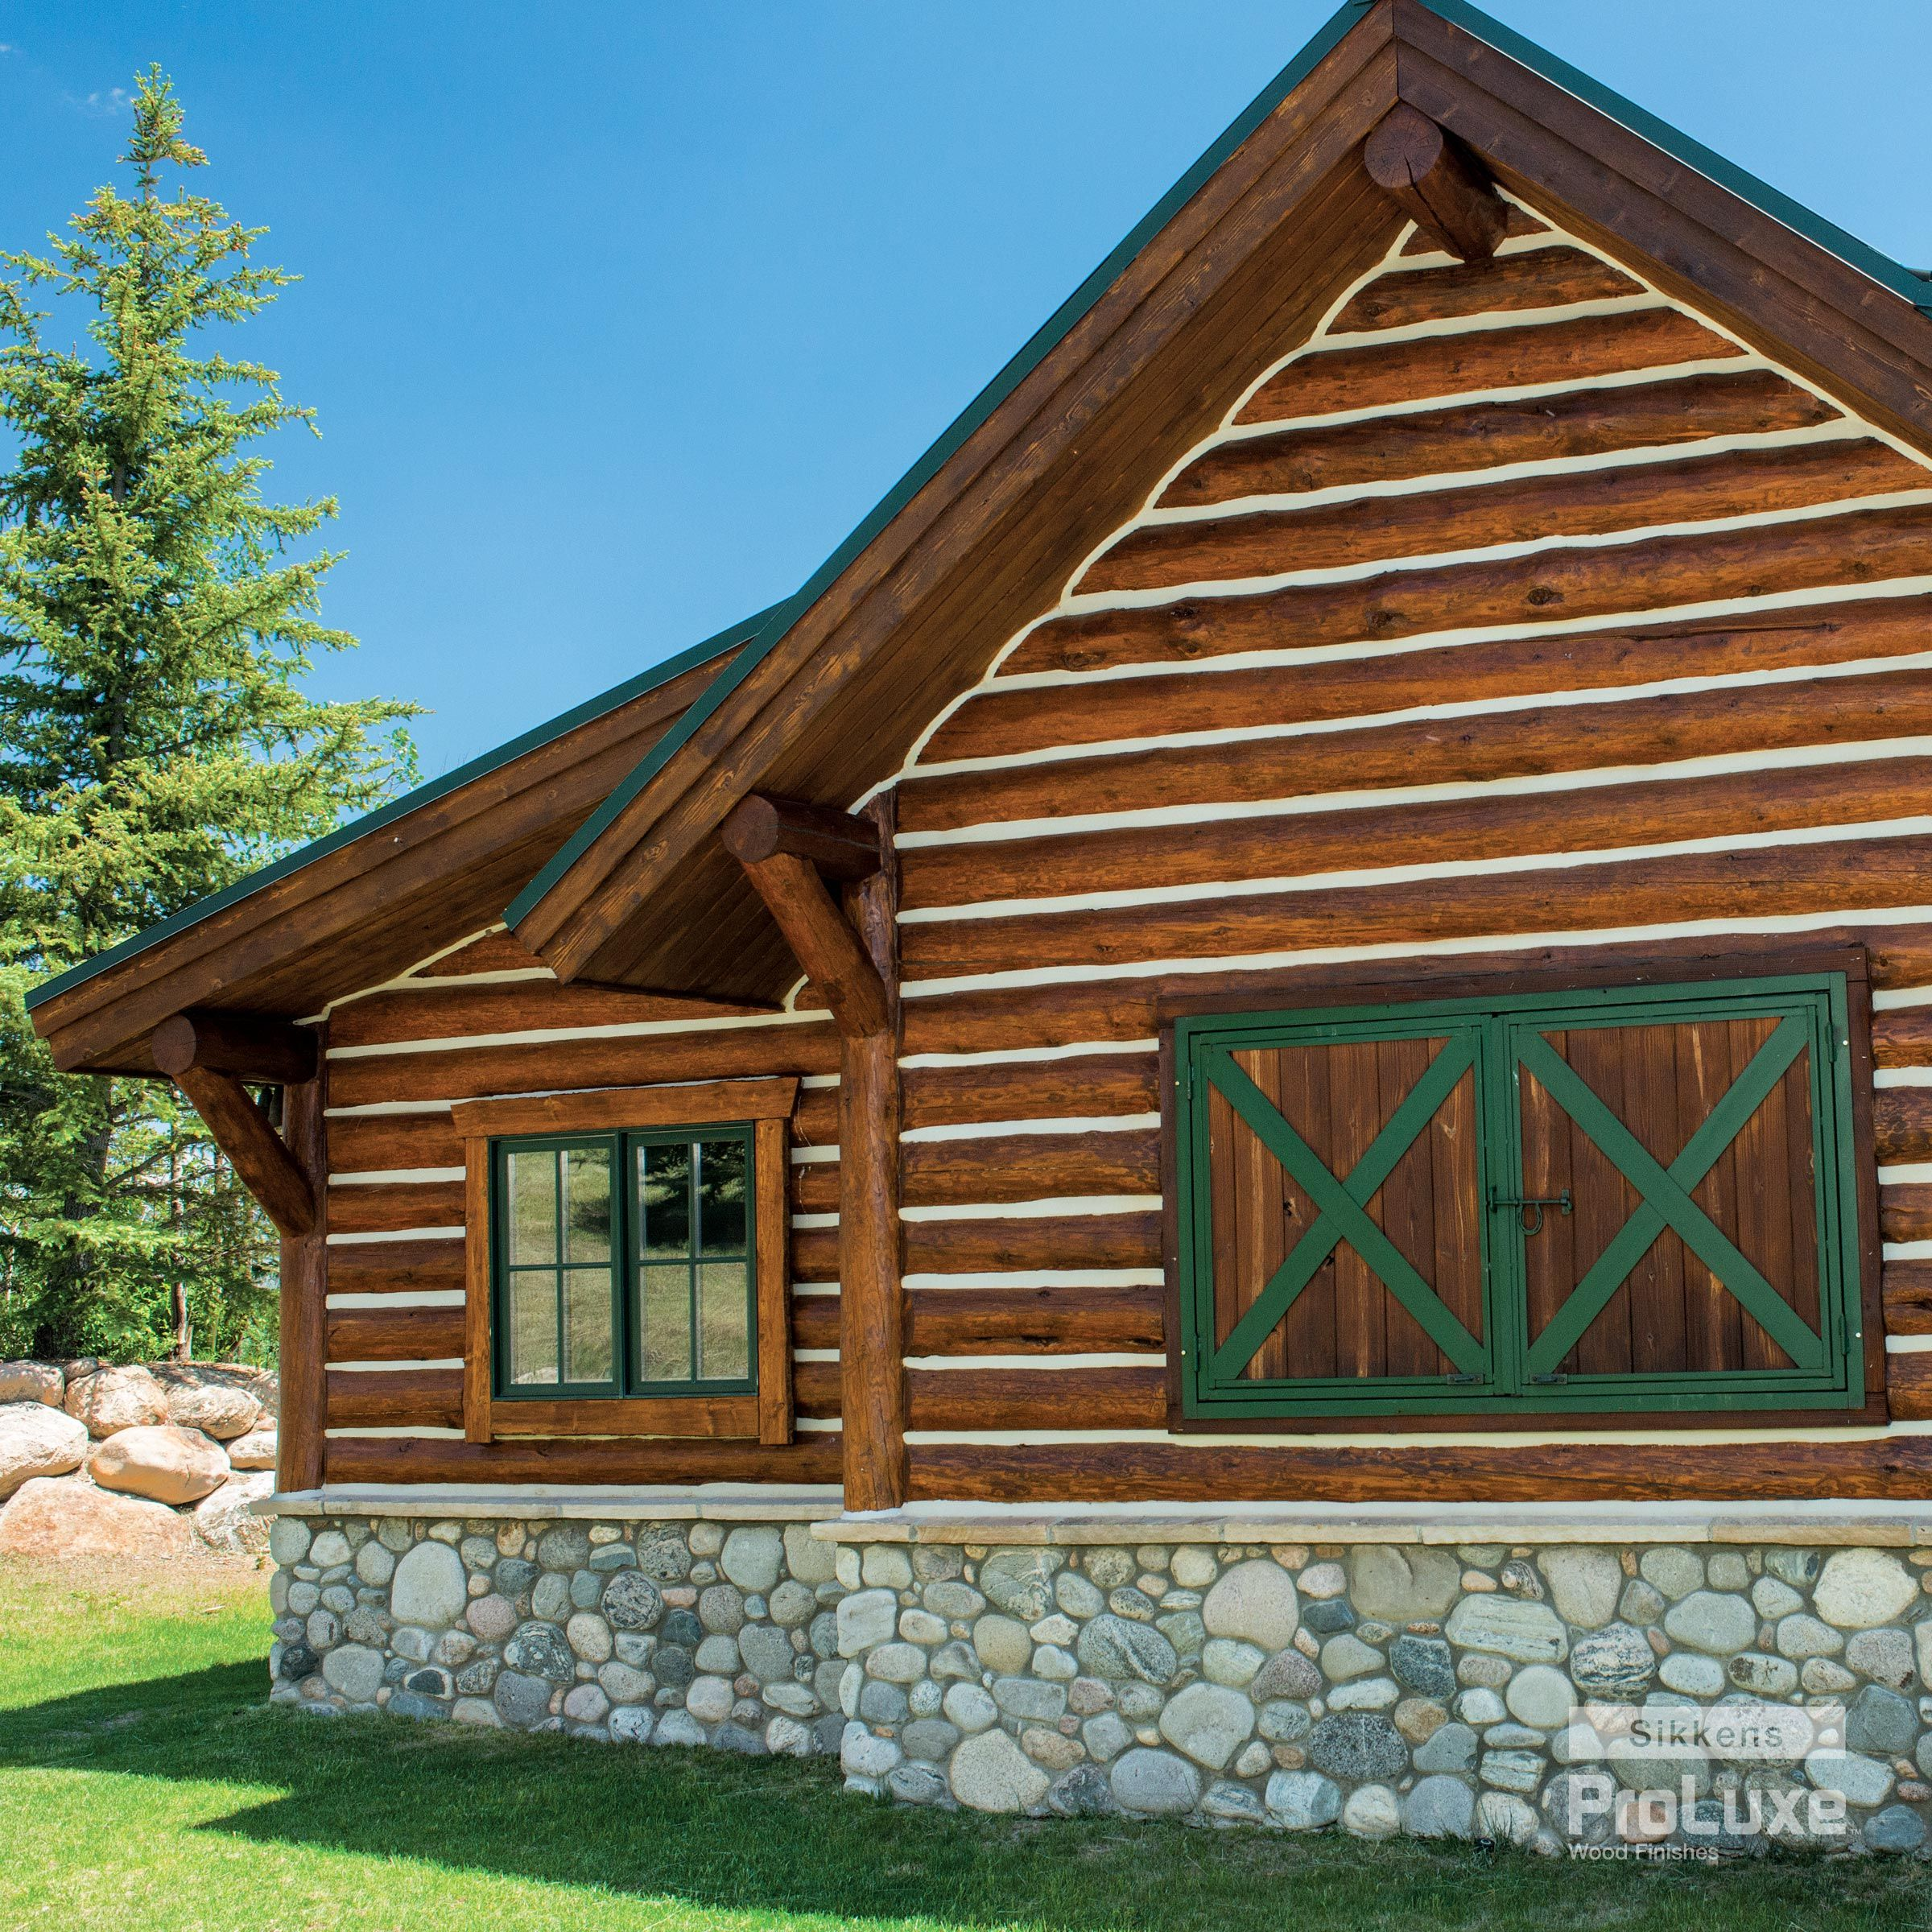 The Rich Wood Tone And Sheen Of This Log Home Were Achieved With Sikkens Proluxe Cetol Log Siding Wood Fin Staining Wood Exterior Wood Stain Exterior Wood